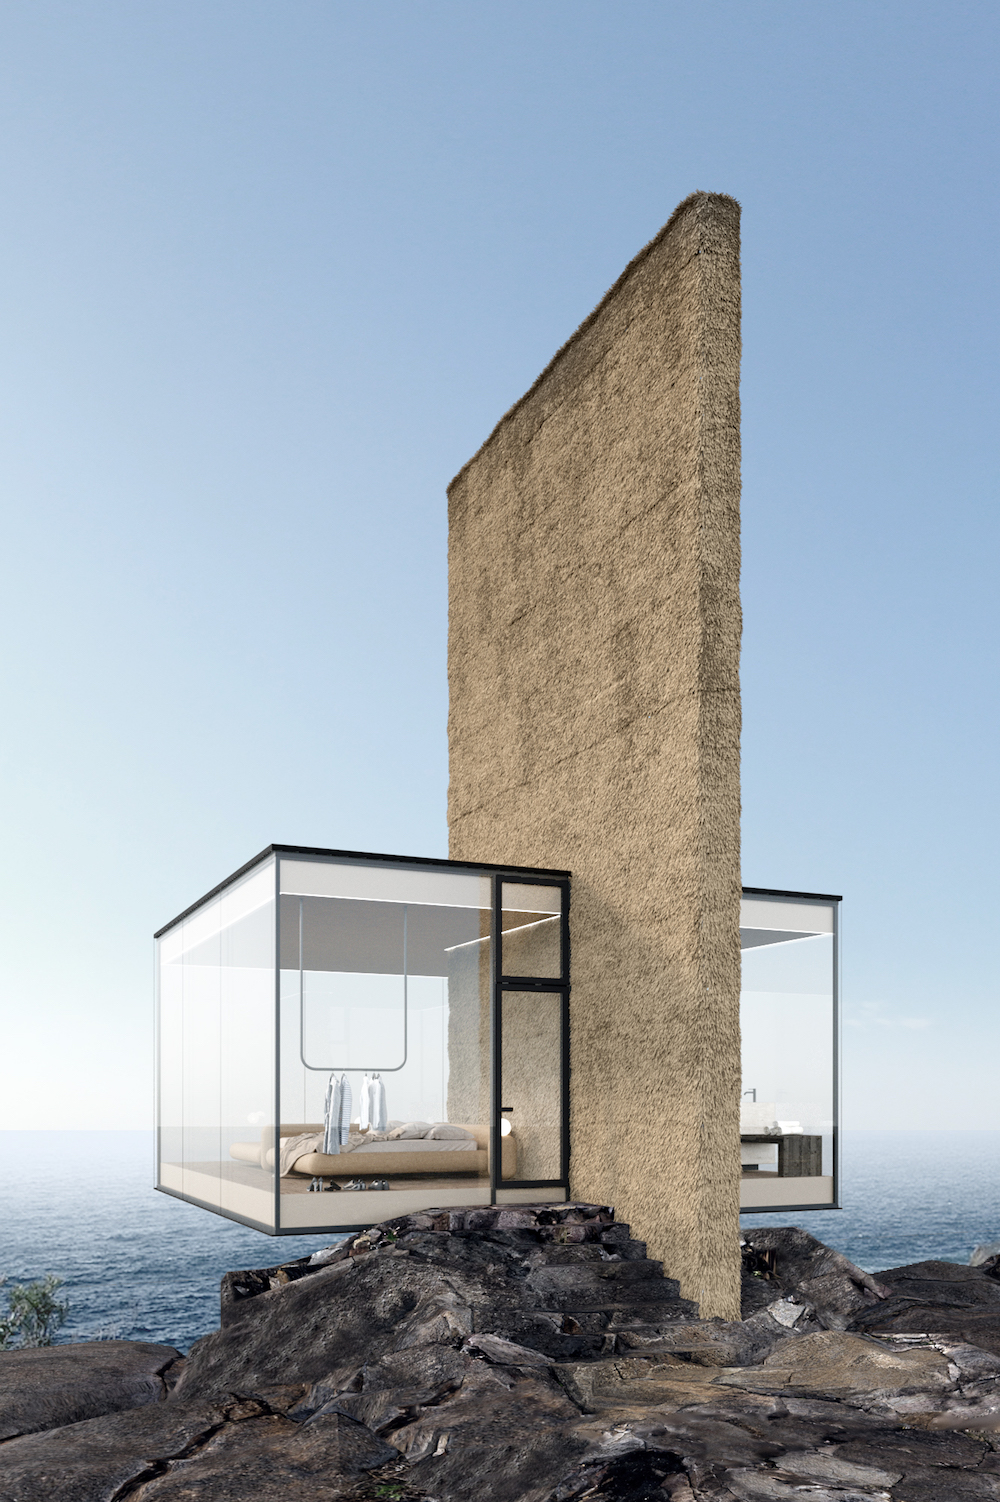 This Transparent Cabin Sits At The Edge Of The World - ASPIRE